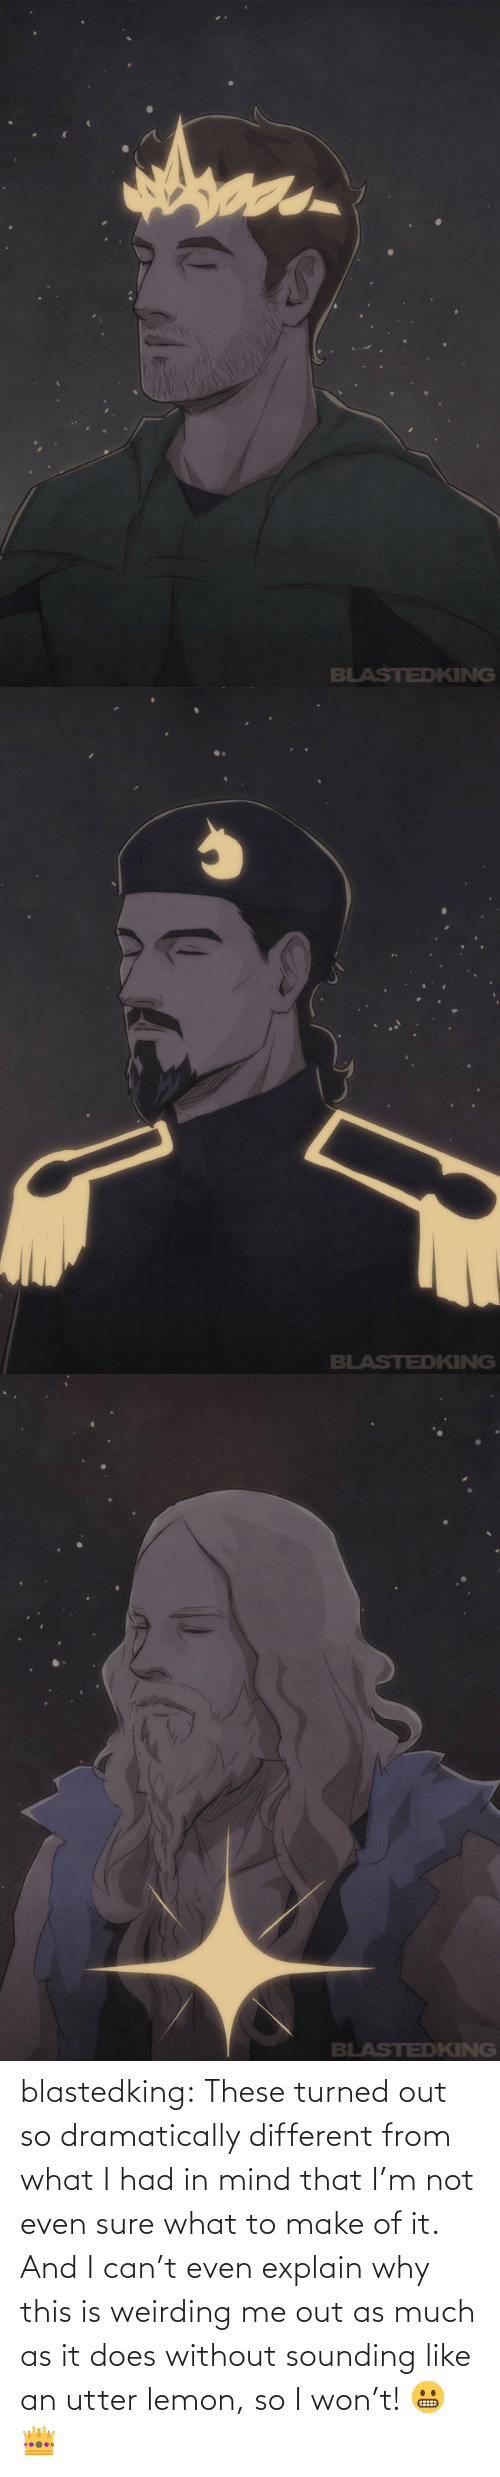 Tumblr, I Won, and Blog: blastedking:  These turned out so dramatically different from what I had in mind that I'm not even sure what to make of it. And I can't even explain why this is weirding me out as much as it does without sounding like an utter lemon, so I won't! 😬👑